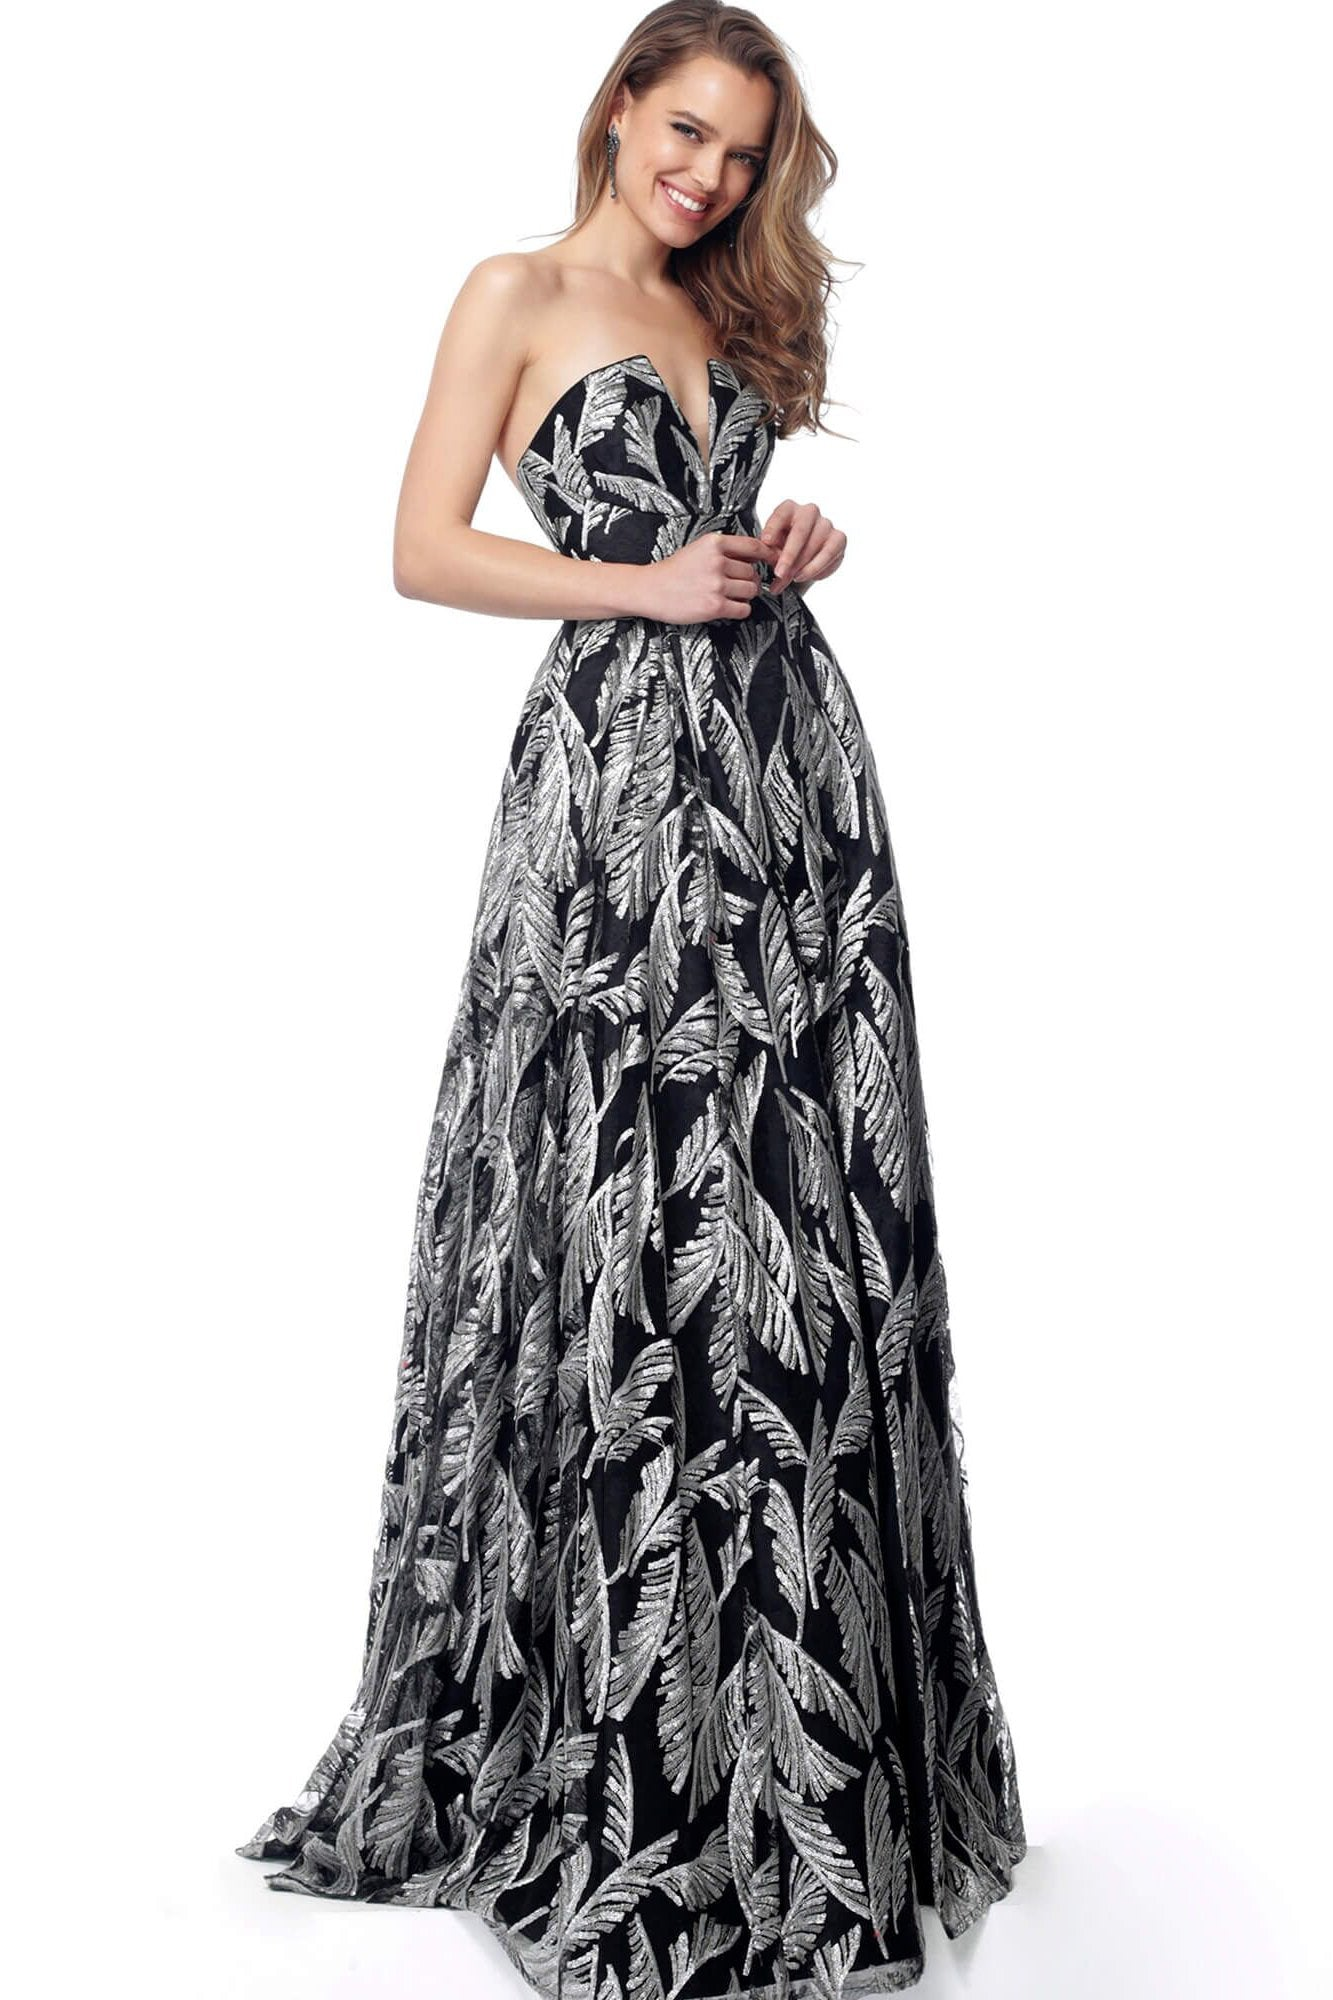 Jovani - 67561 Sequined Strapless A-line Dress In Black and Silver